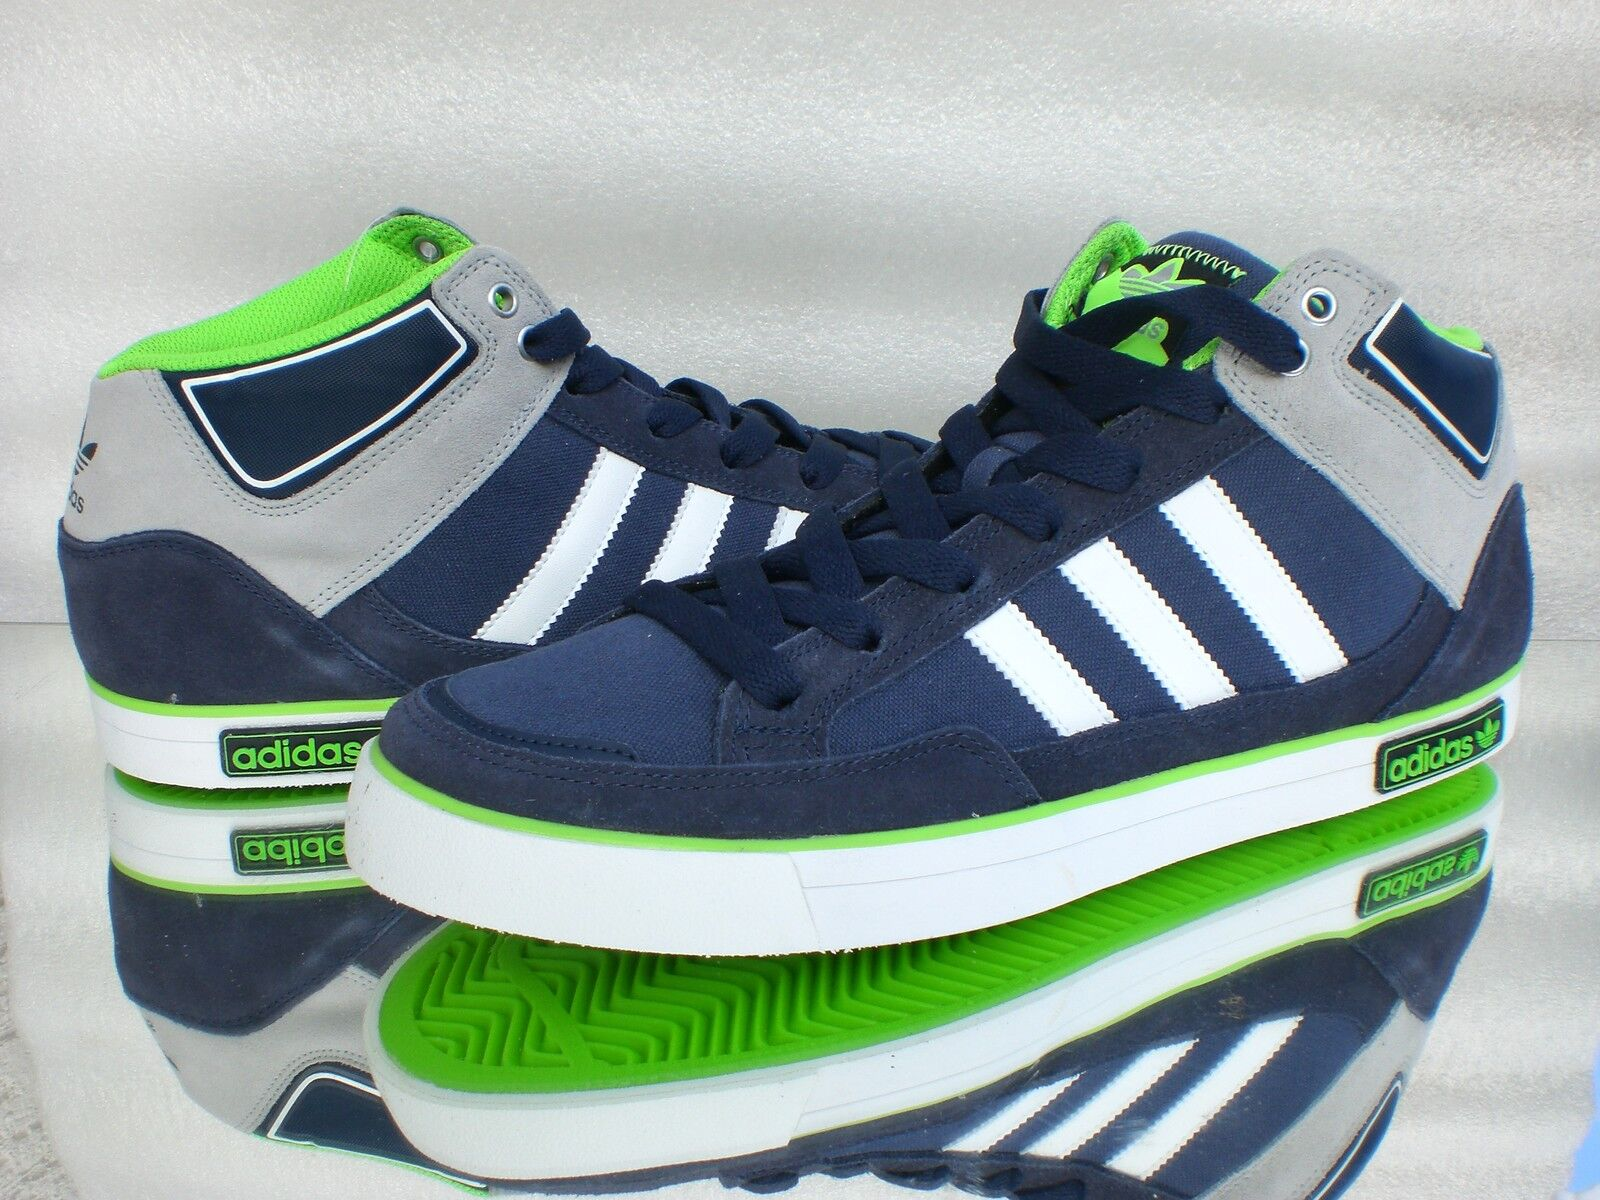 Adidas vc1000 originals men& 039;s dark bluee G 33586 laufschuhesneaker leather textile